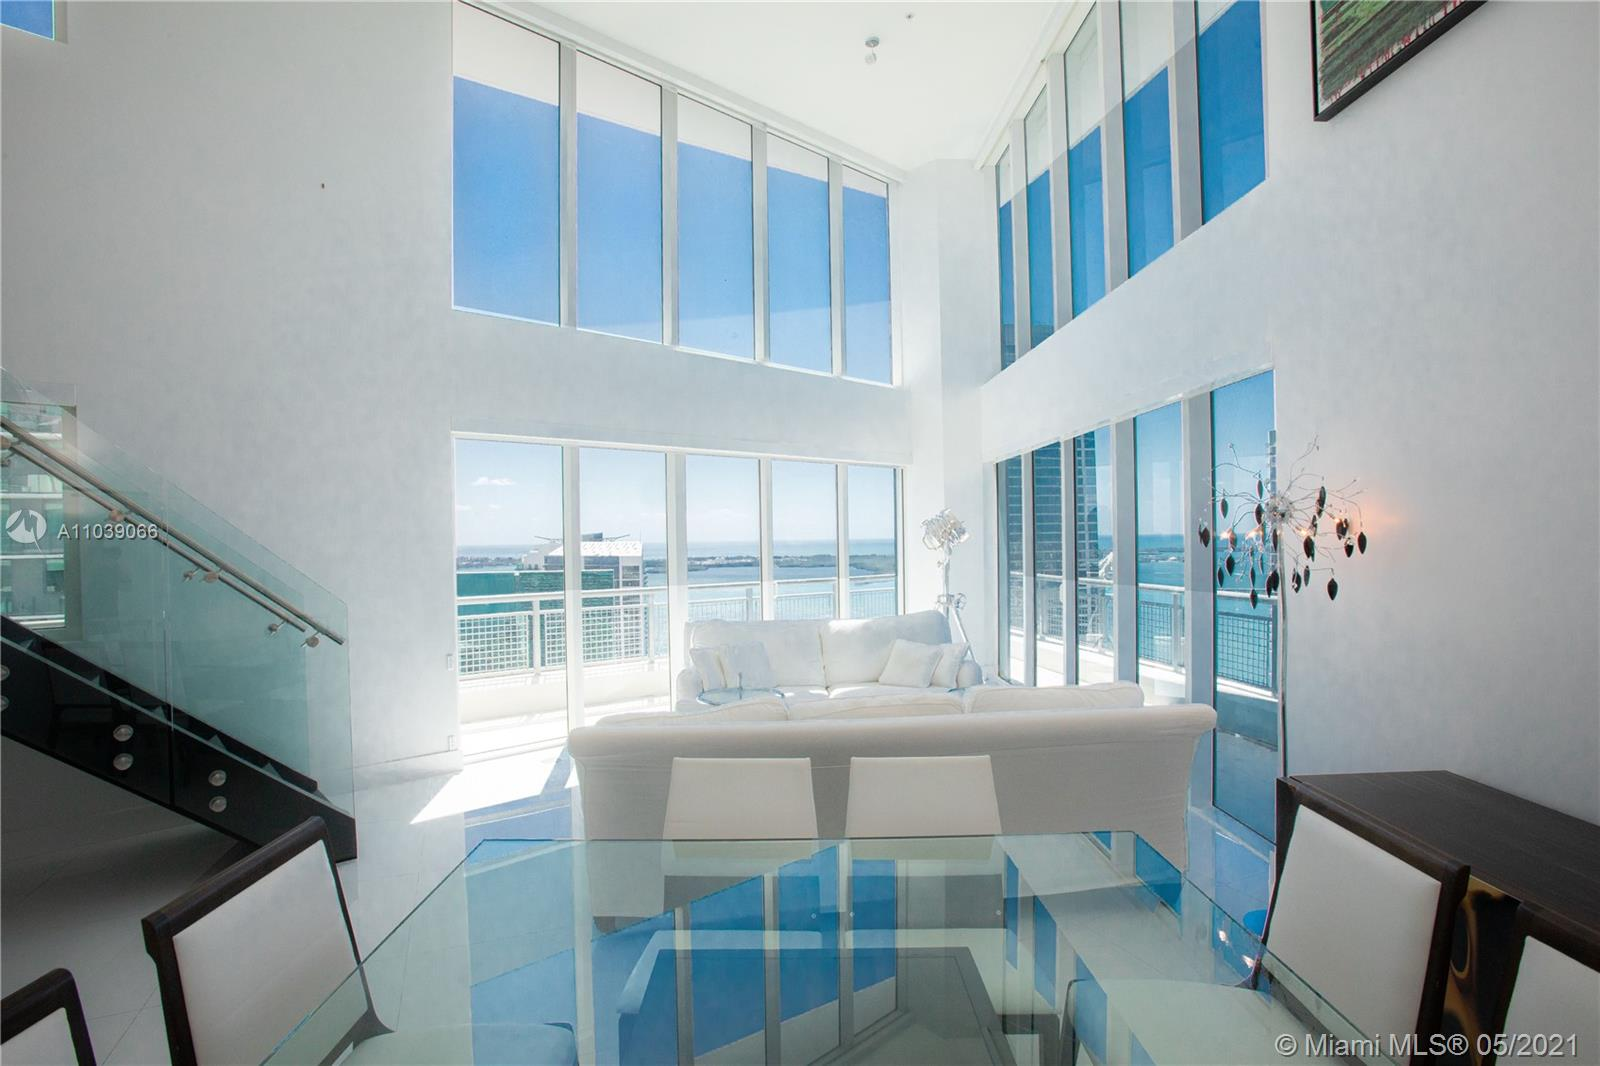 SPECTACULAR BRIGHT APARTMENT IN THE HEART OF BRICKELL. STUNNING BREATHTAKING PANORAMIC OCEAN VIEW FROM THE PRIVILEGE CORNER HIGH RISE UNBEATABLE POSITION IN A FIRST CLASS AMENITIES BUILDING. DOUBLE HIGH CEILINGS .WALKING DISTANCE TO MIAMI CITY CENTER,RESTAURANTS AND SHOPS.* SELLER WILL PAY CURRENT SPECIAL BUILDING ASSESSMENTS. GREAT OPPORTUNITY! A MUST SEE..!!